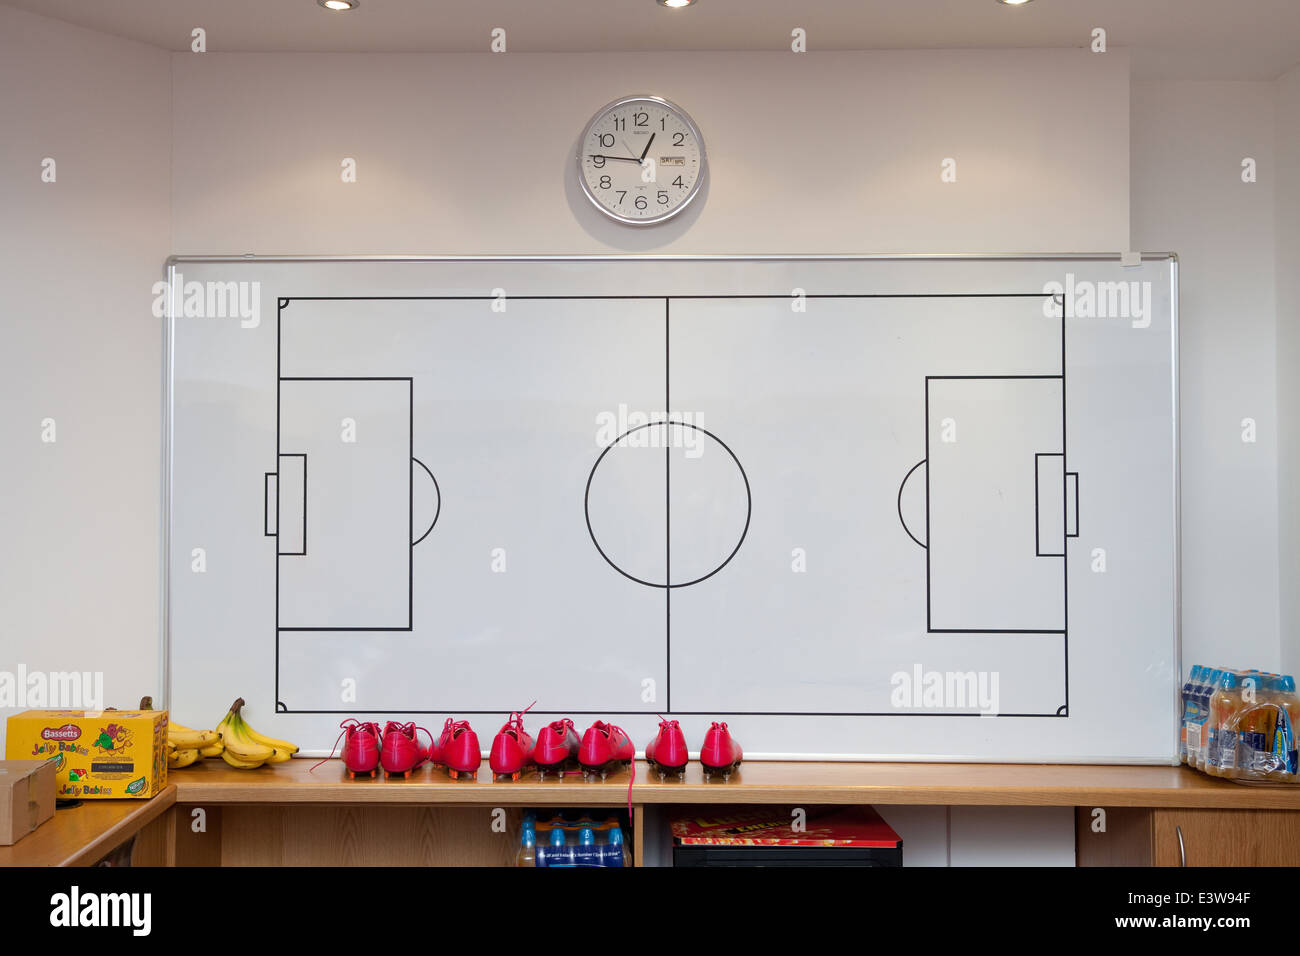 A white board with a football pitch marked on it in a dressing room - Stock Image